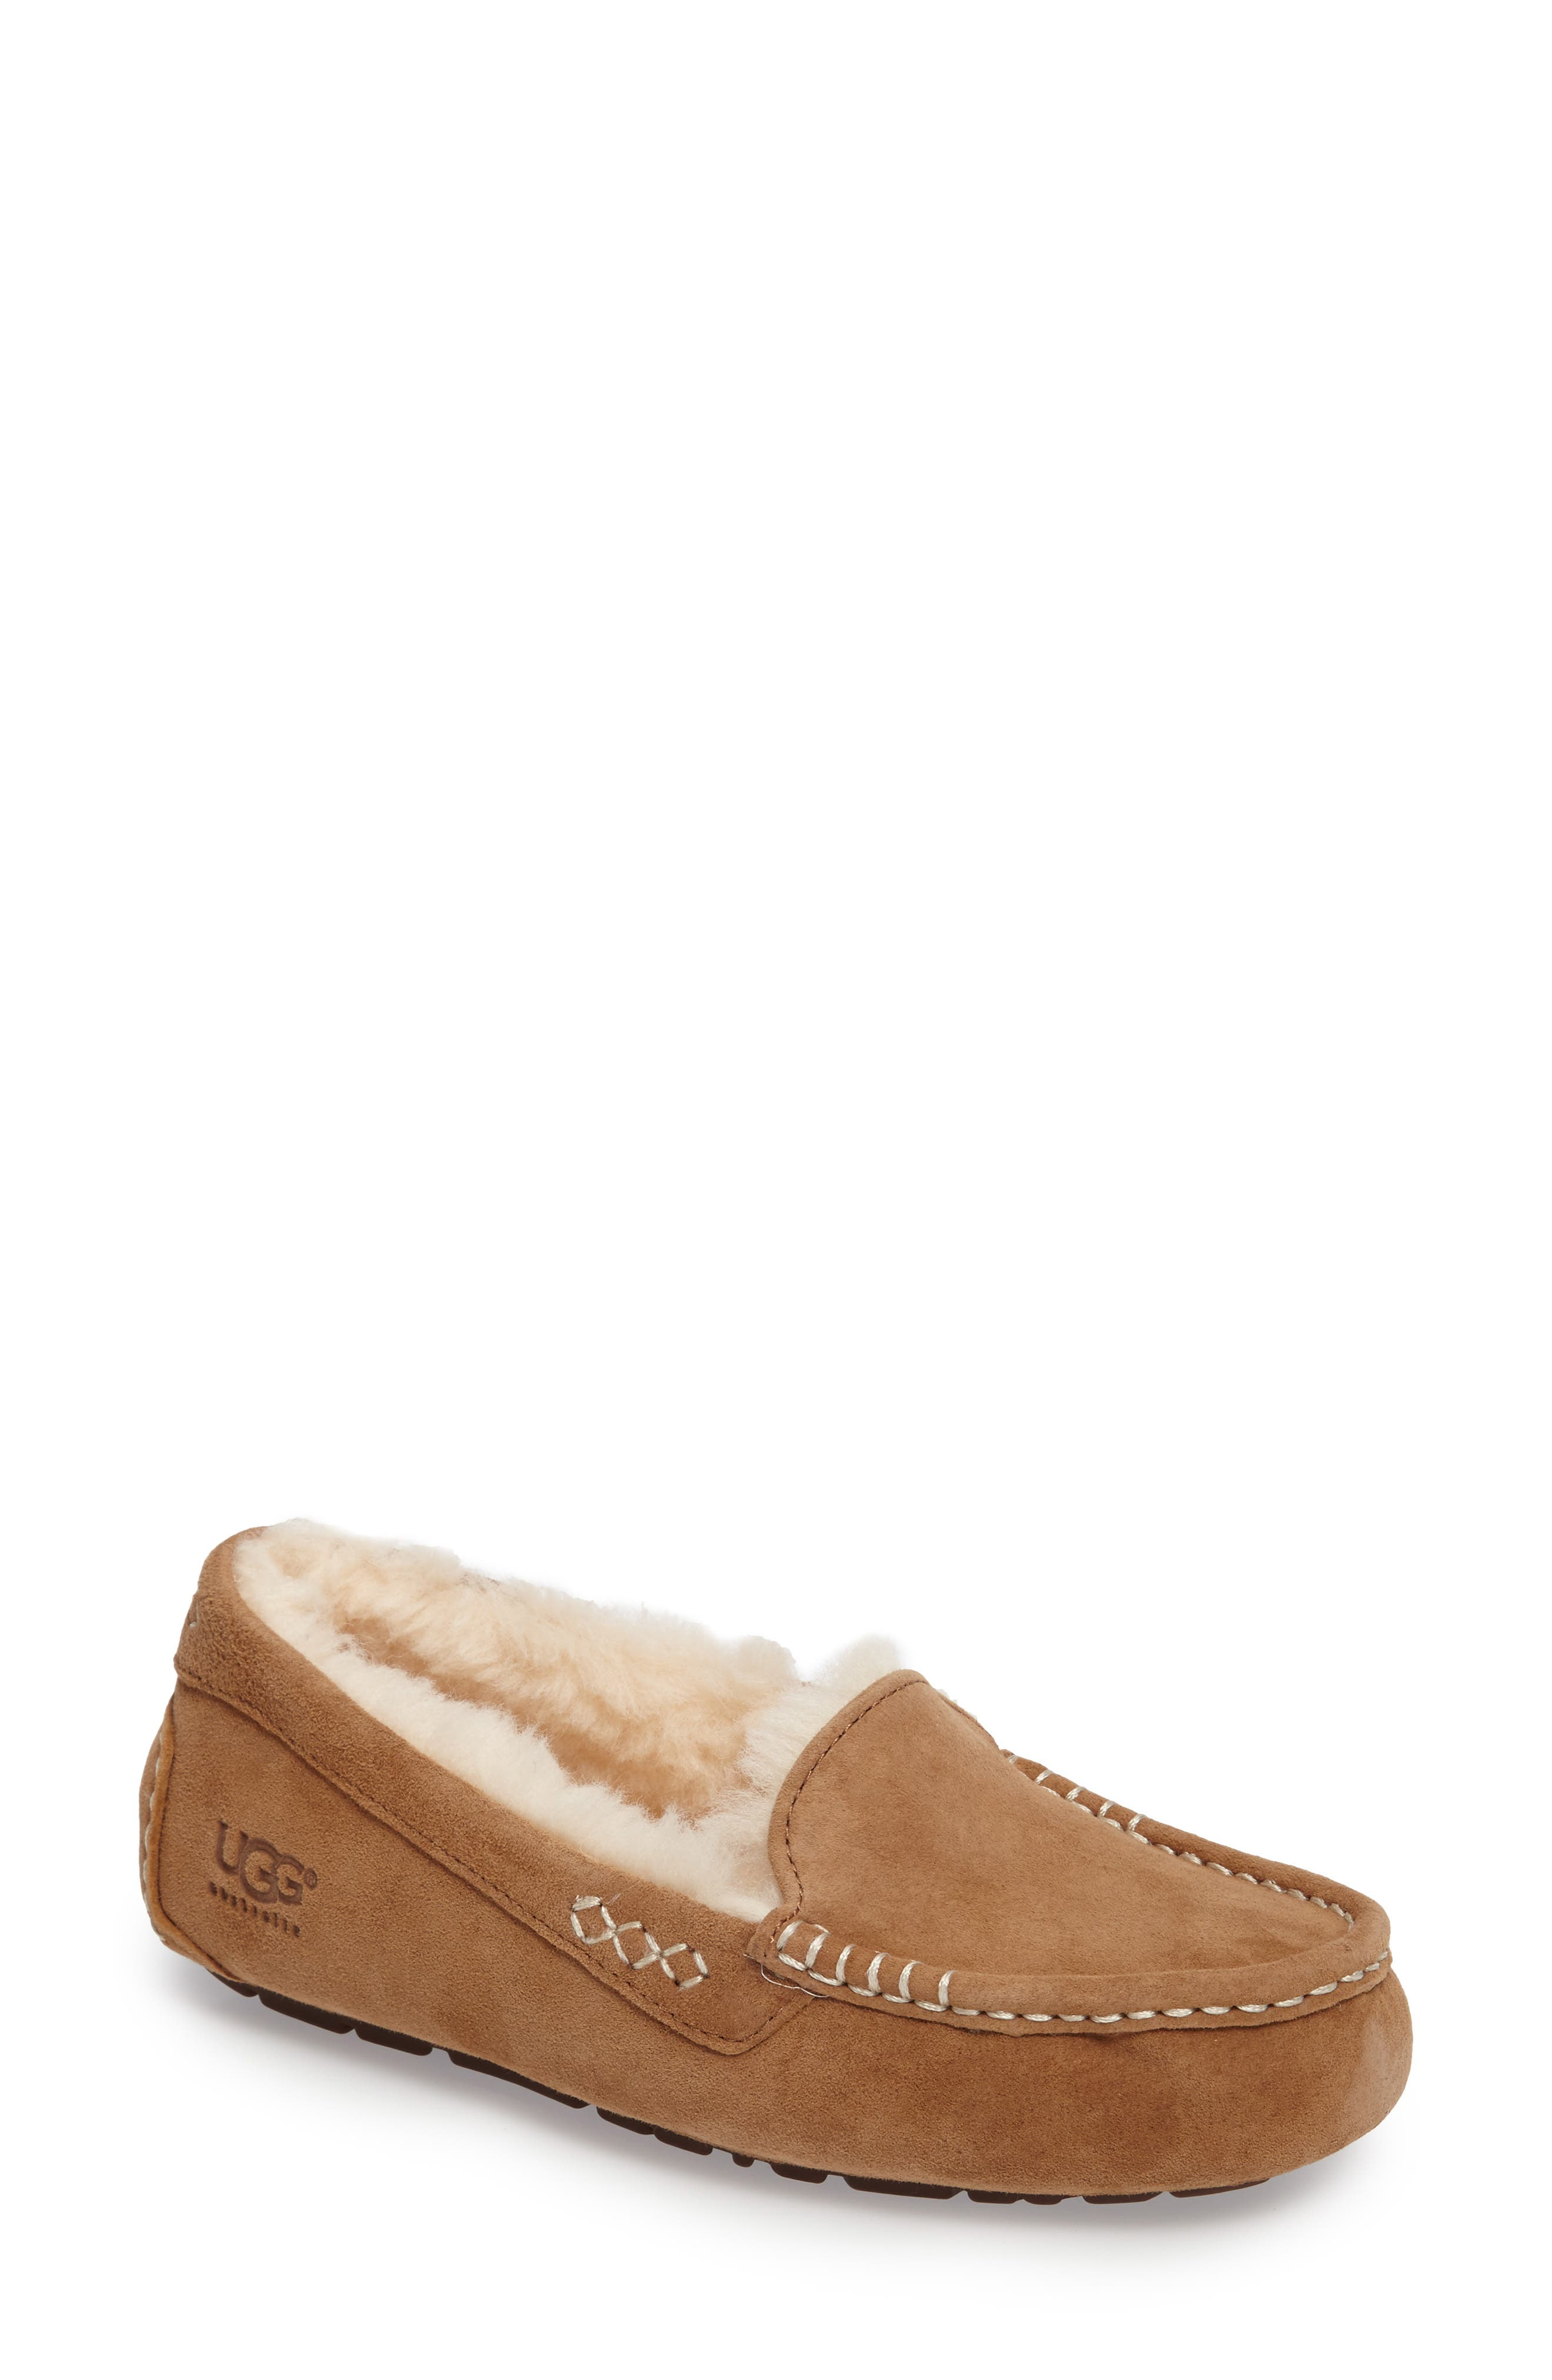 Ugg Ansley Water Resistant Slipper, Brown